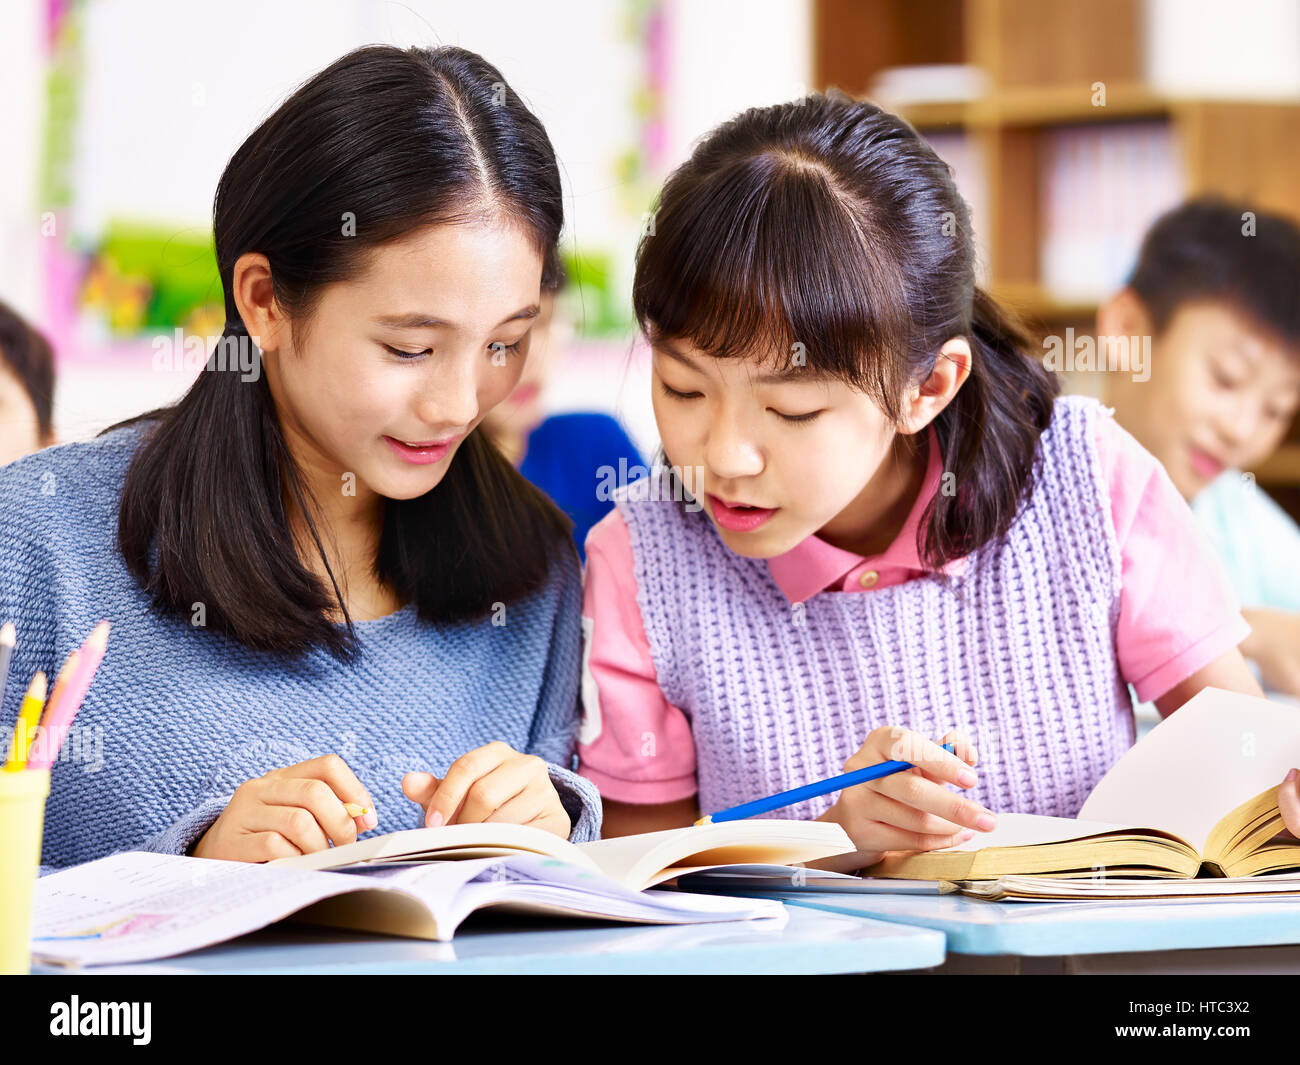 two asian elementary schoolgirls desk mates having a discussion during class in classroom. - Stock Image